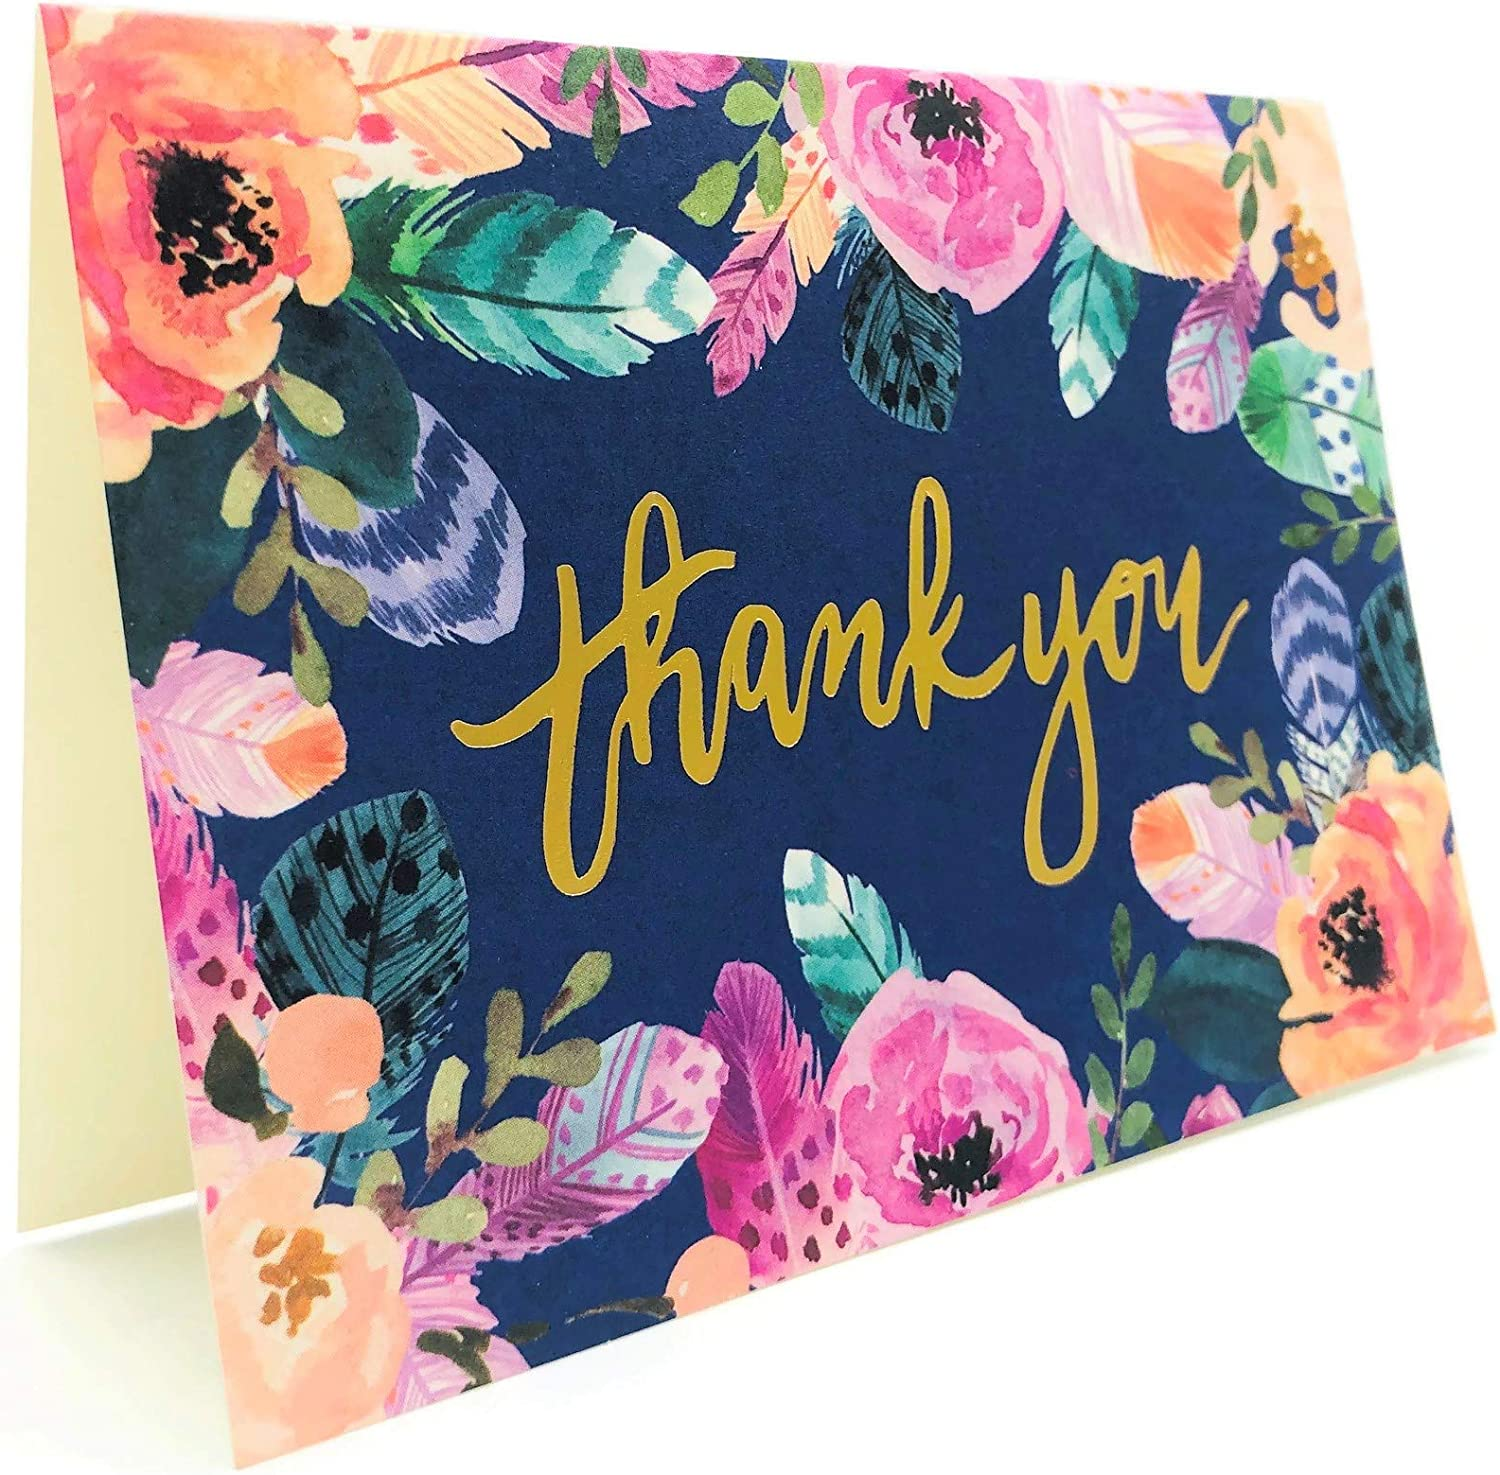 Clementine Paper Inc Boho Chic Bird Feathers & Garden Flowers Blank Thank You Notes Greeting Card Notecard Boxed Set 16 Cards & Envelopes, Gold Foil Thank You with Bird Feathers & Garden Flowers